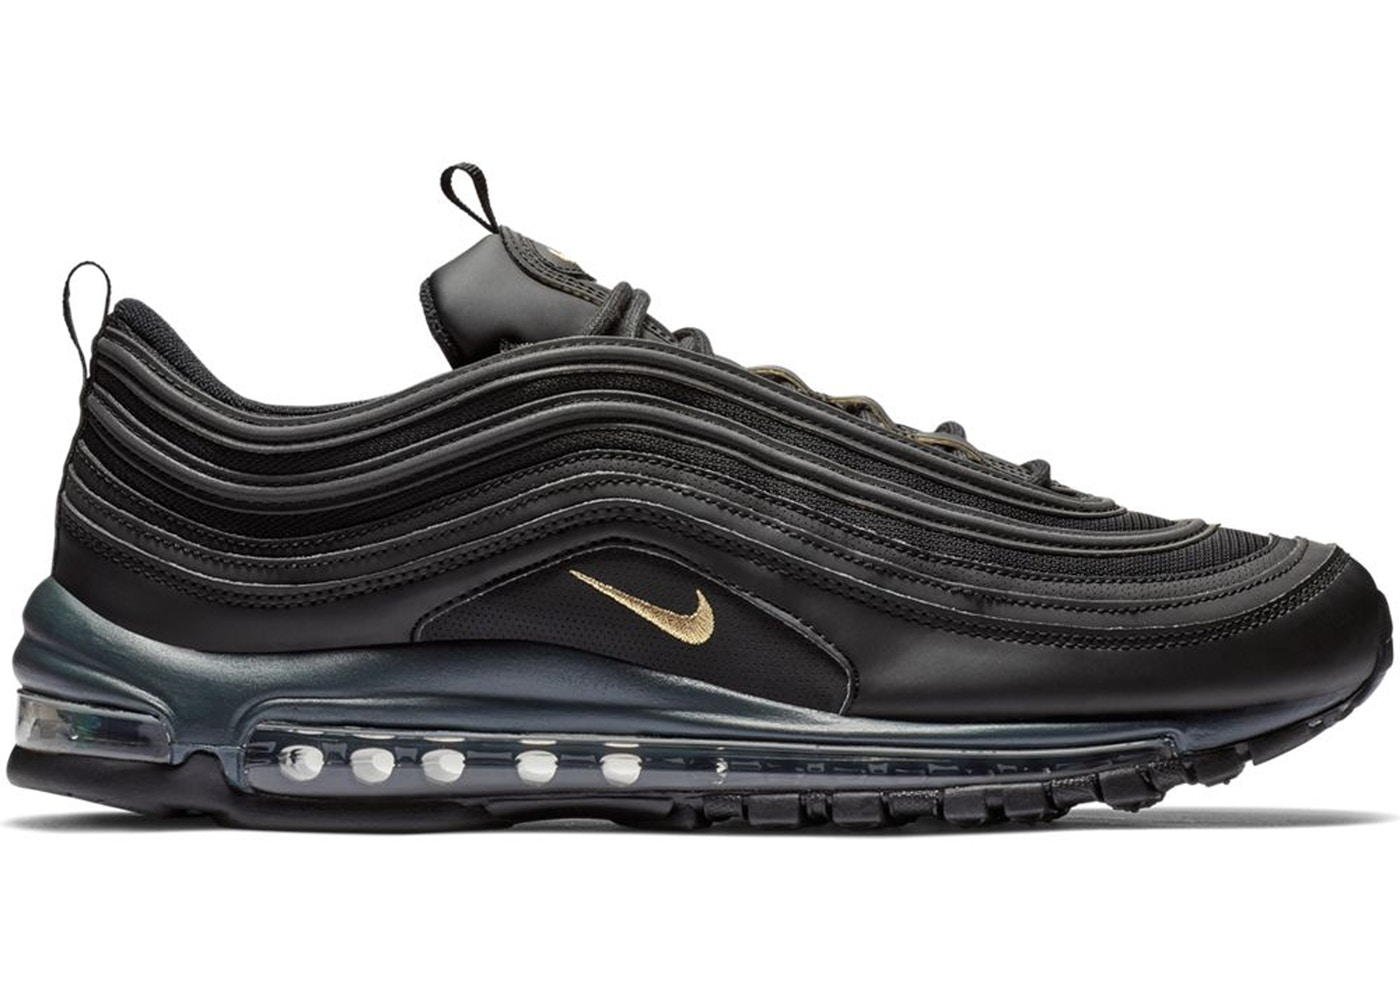 newest 2bccf f21d4 Air Max 97 Leather Black Gold